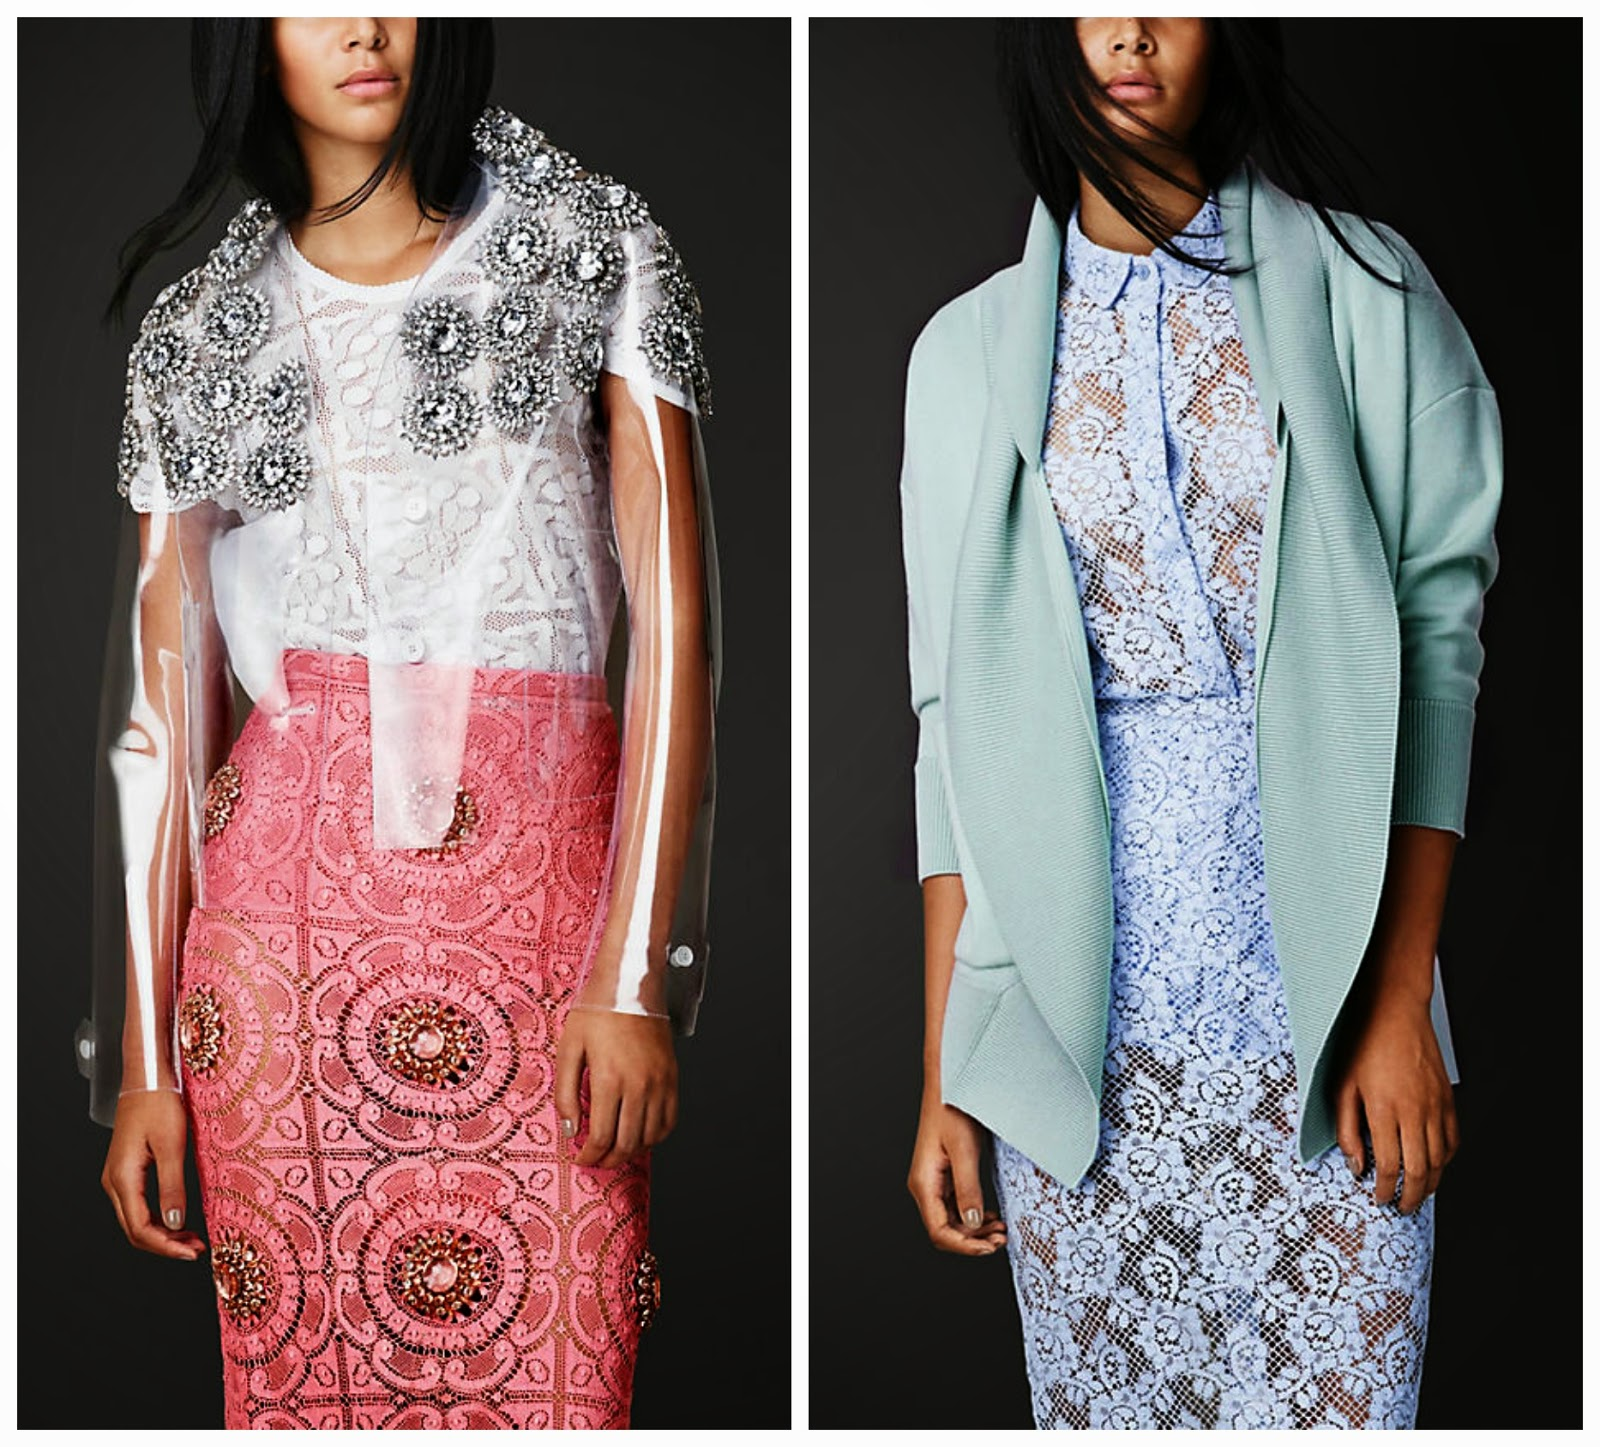 b0ae27618472 Become Fashion's Princess in Burberry Prorsum Spring/Summer 2014 -  Embellished and Pastel Jackets